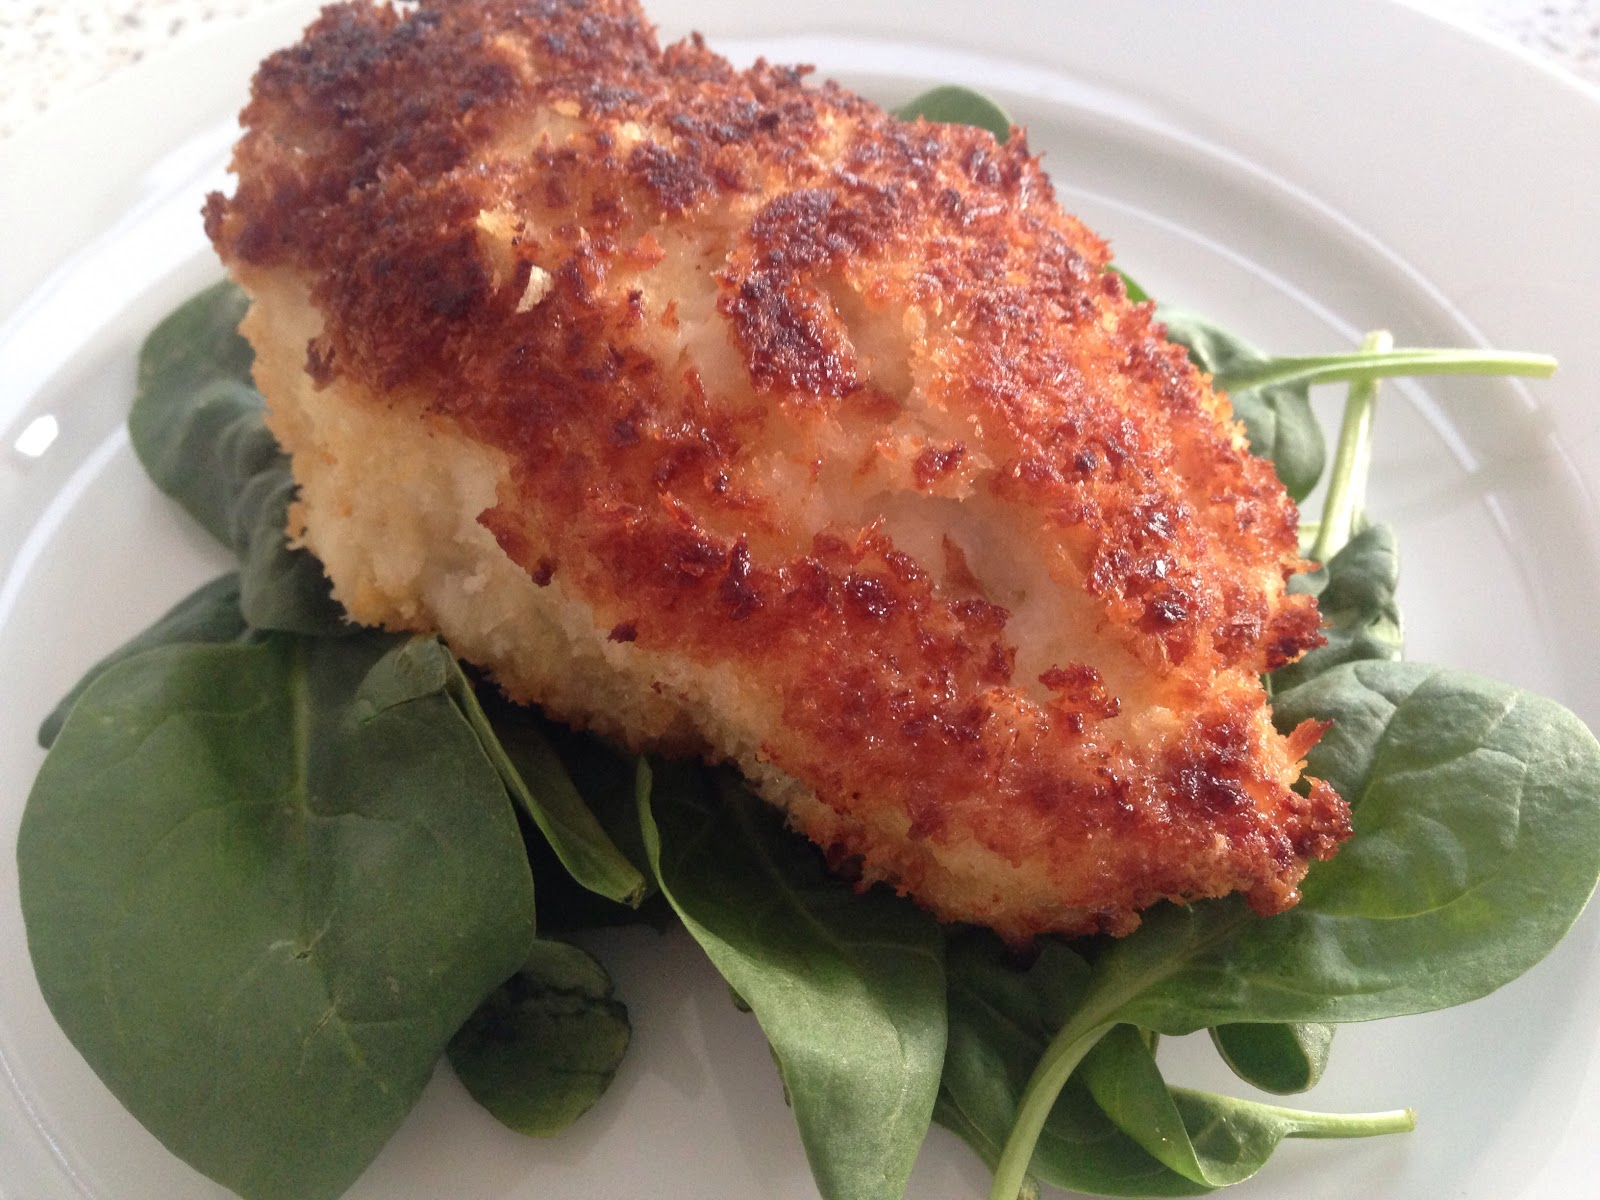 Tom kerridge chicken kiev recipe when the thickest part of the meat is pierced with a skewer remember not to pierce the chicken all the way to the buttery centre serve immediately forumfinder Image collections